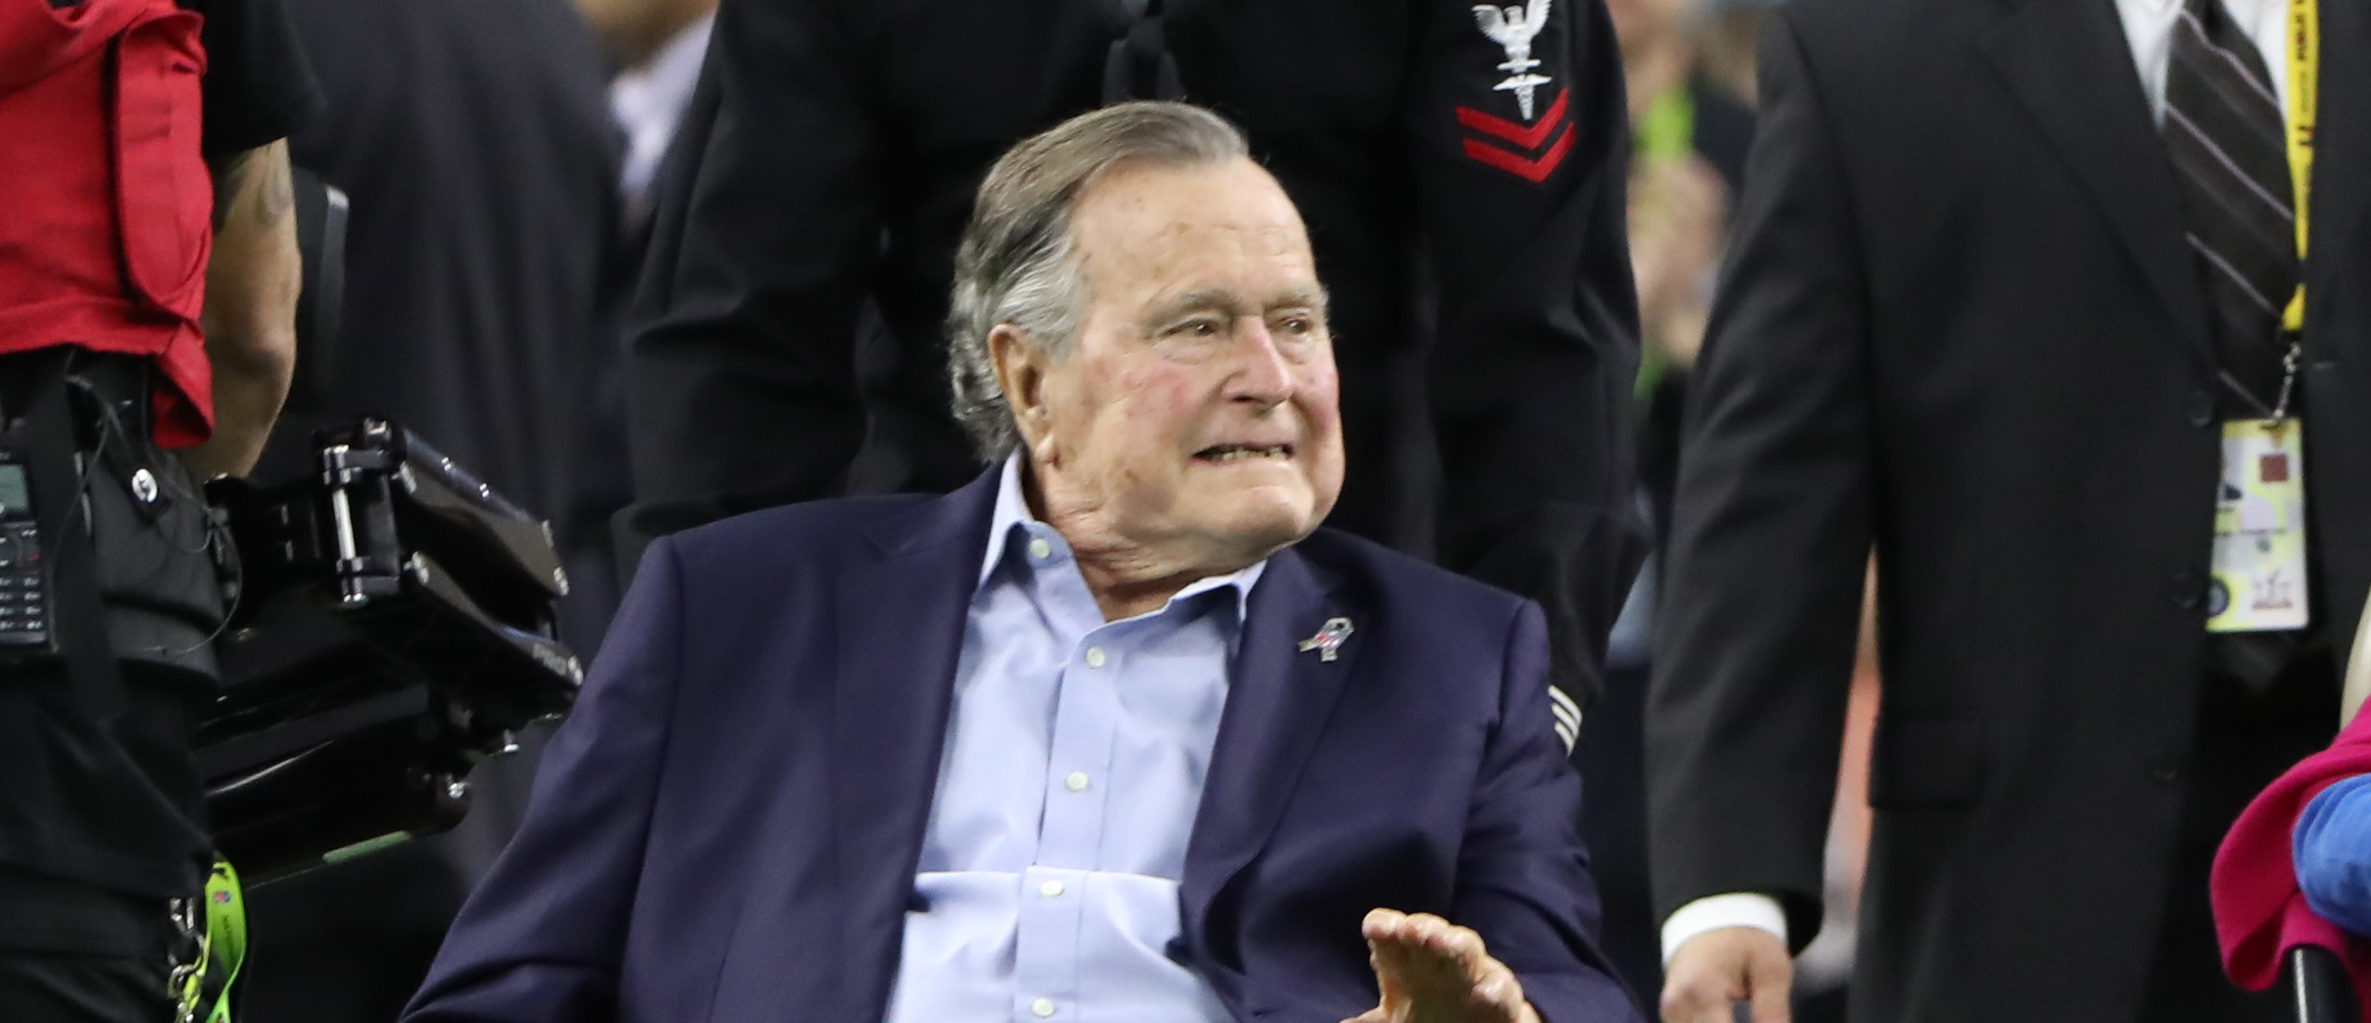 Former President George H.W. Bush and former first lady Barbara Bush arrive on the field to do the coin toss ahead of the start of Super Bowl LI between the New England Patriots and the Atlanta Falcons in Houston, on February 5, 2017. REUTERS/Adrees Latif